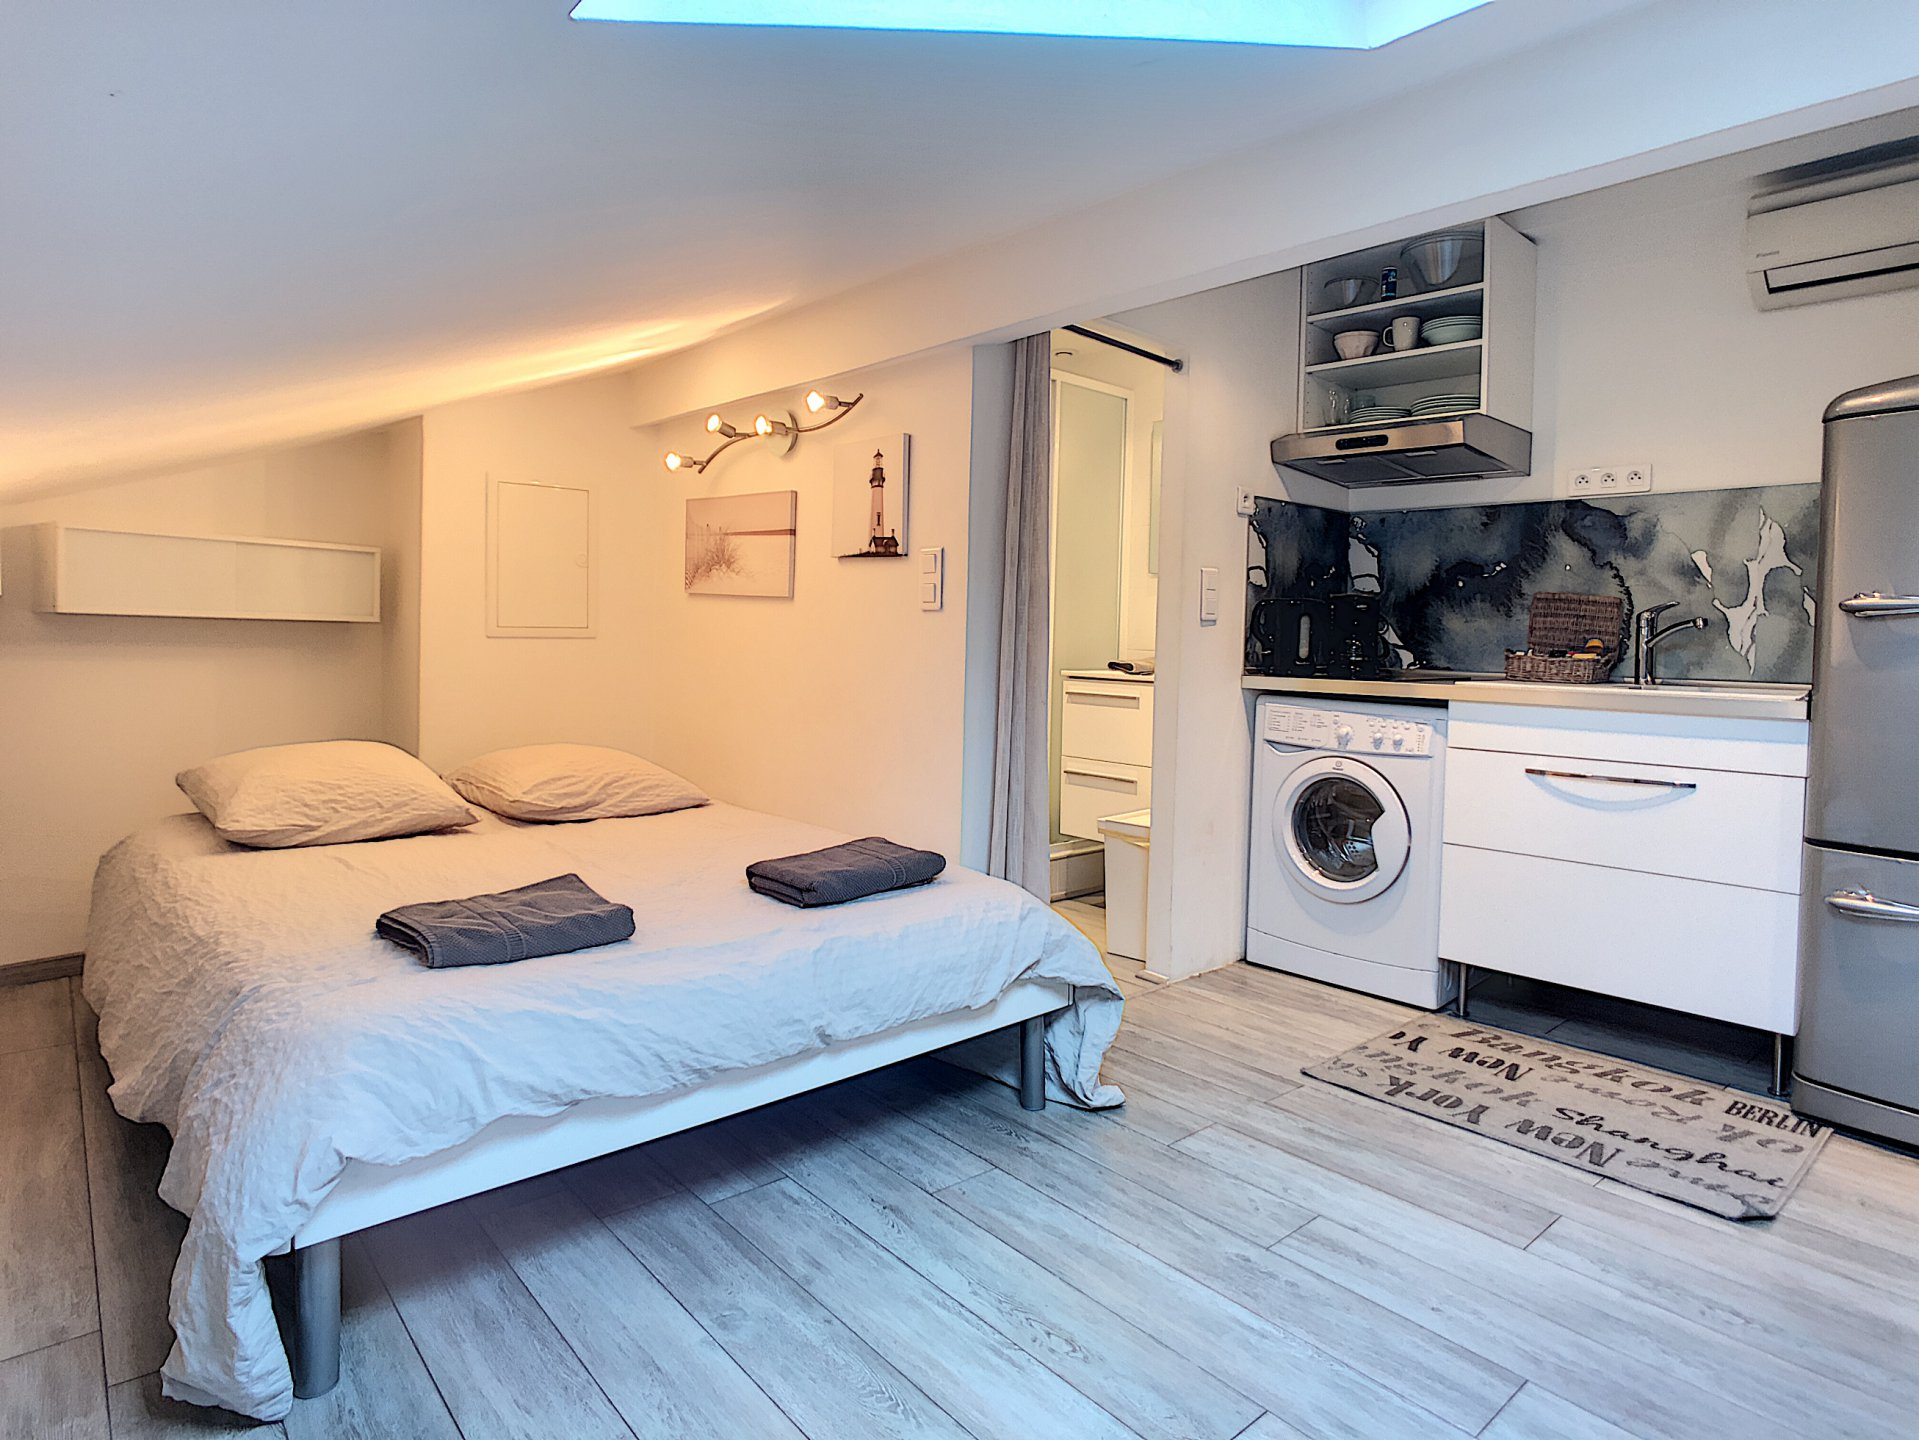 Studio in Cannes, two minutes from Palais des festivals and the Sea